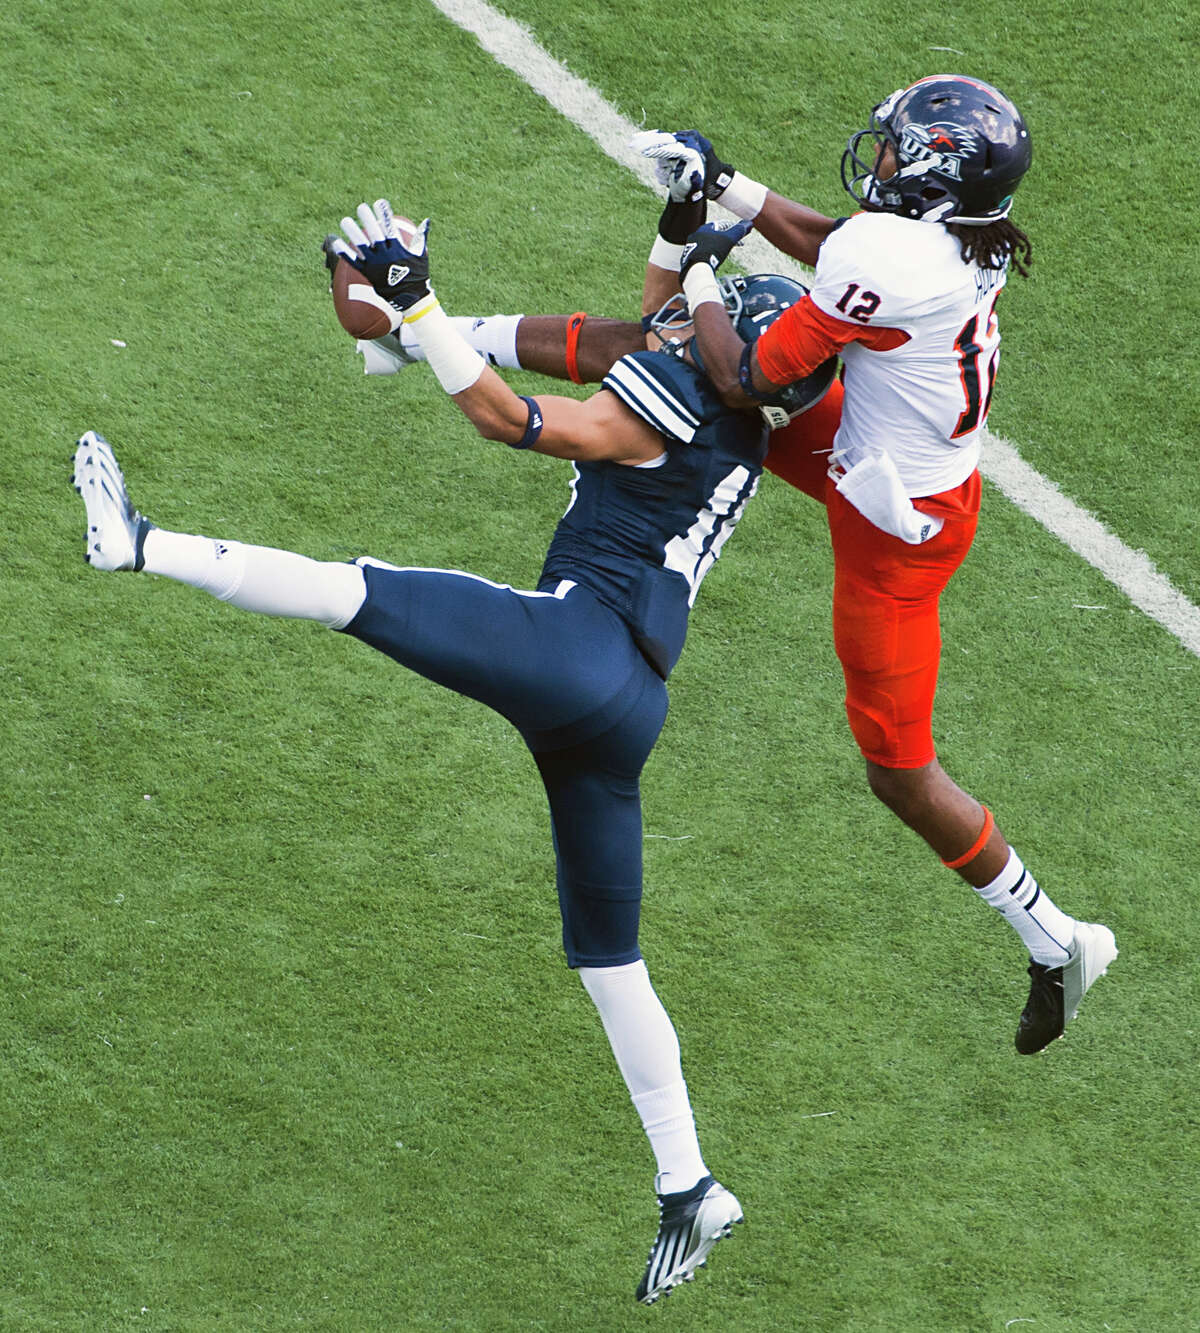 Rice cornerback Phillip Gaines (15) breaks up a pass intended for UTSA wide receiver Earon Holmes (12) during the first quarter of a college football game at Rice Stadium, Saturday, Oct. 13, 2012, in Houston.